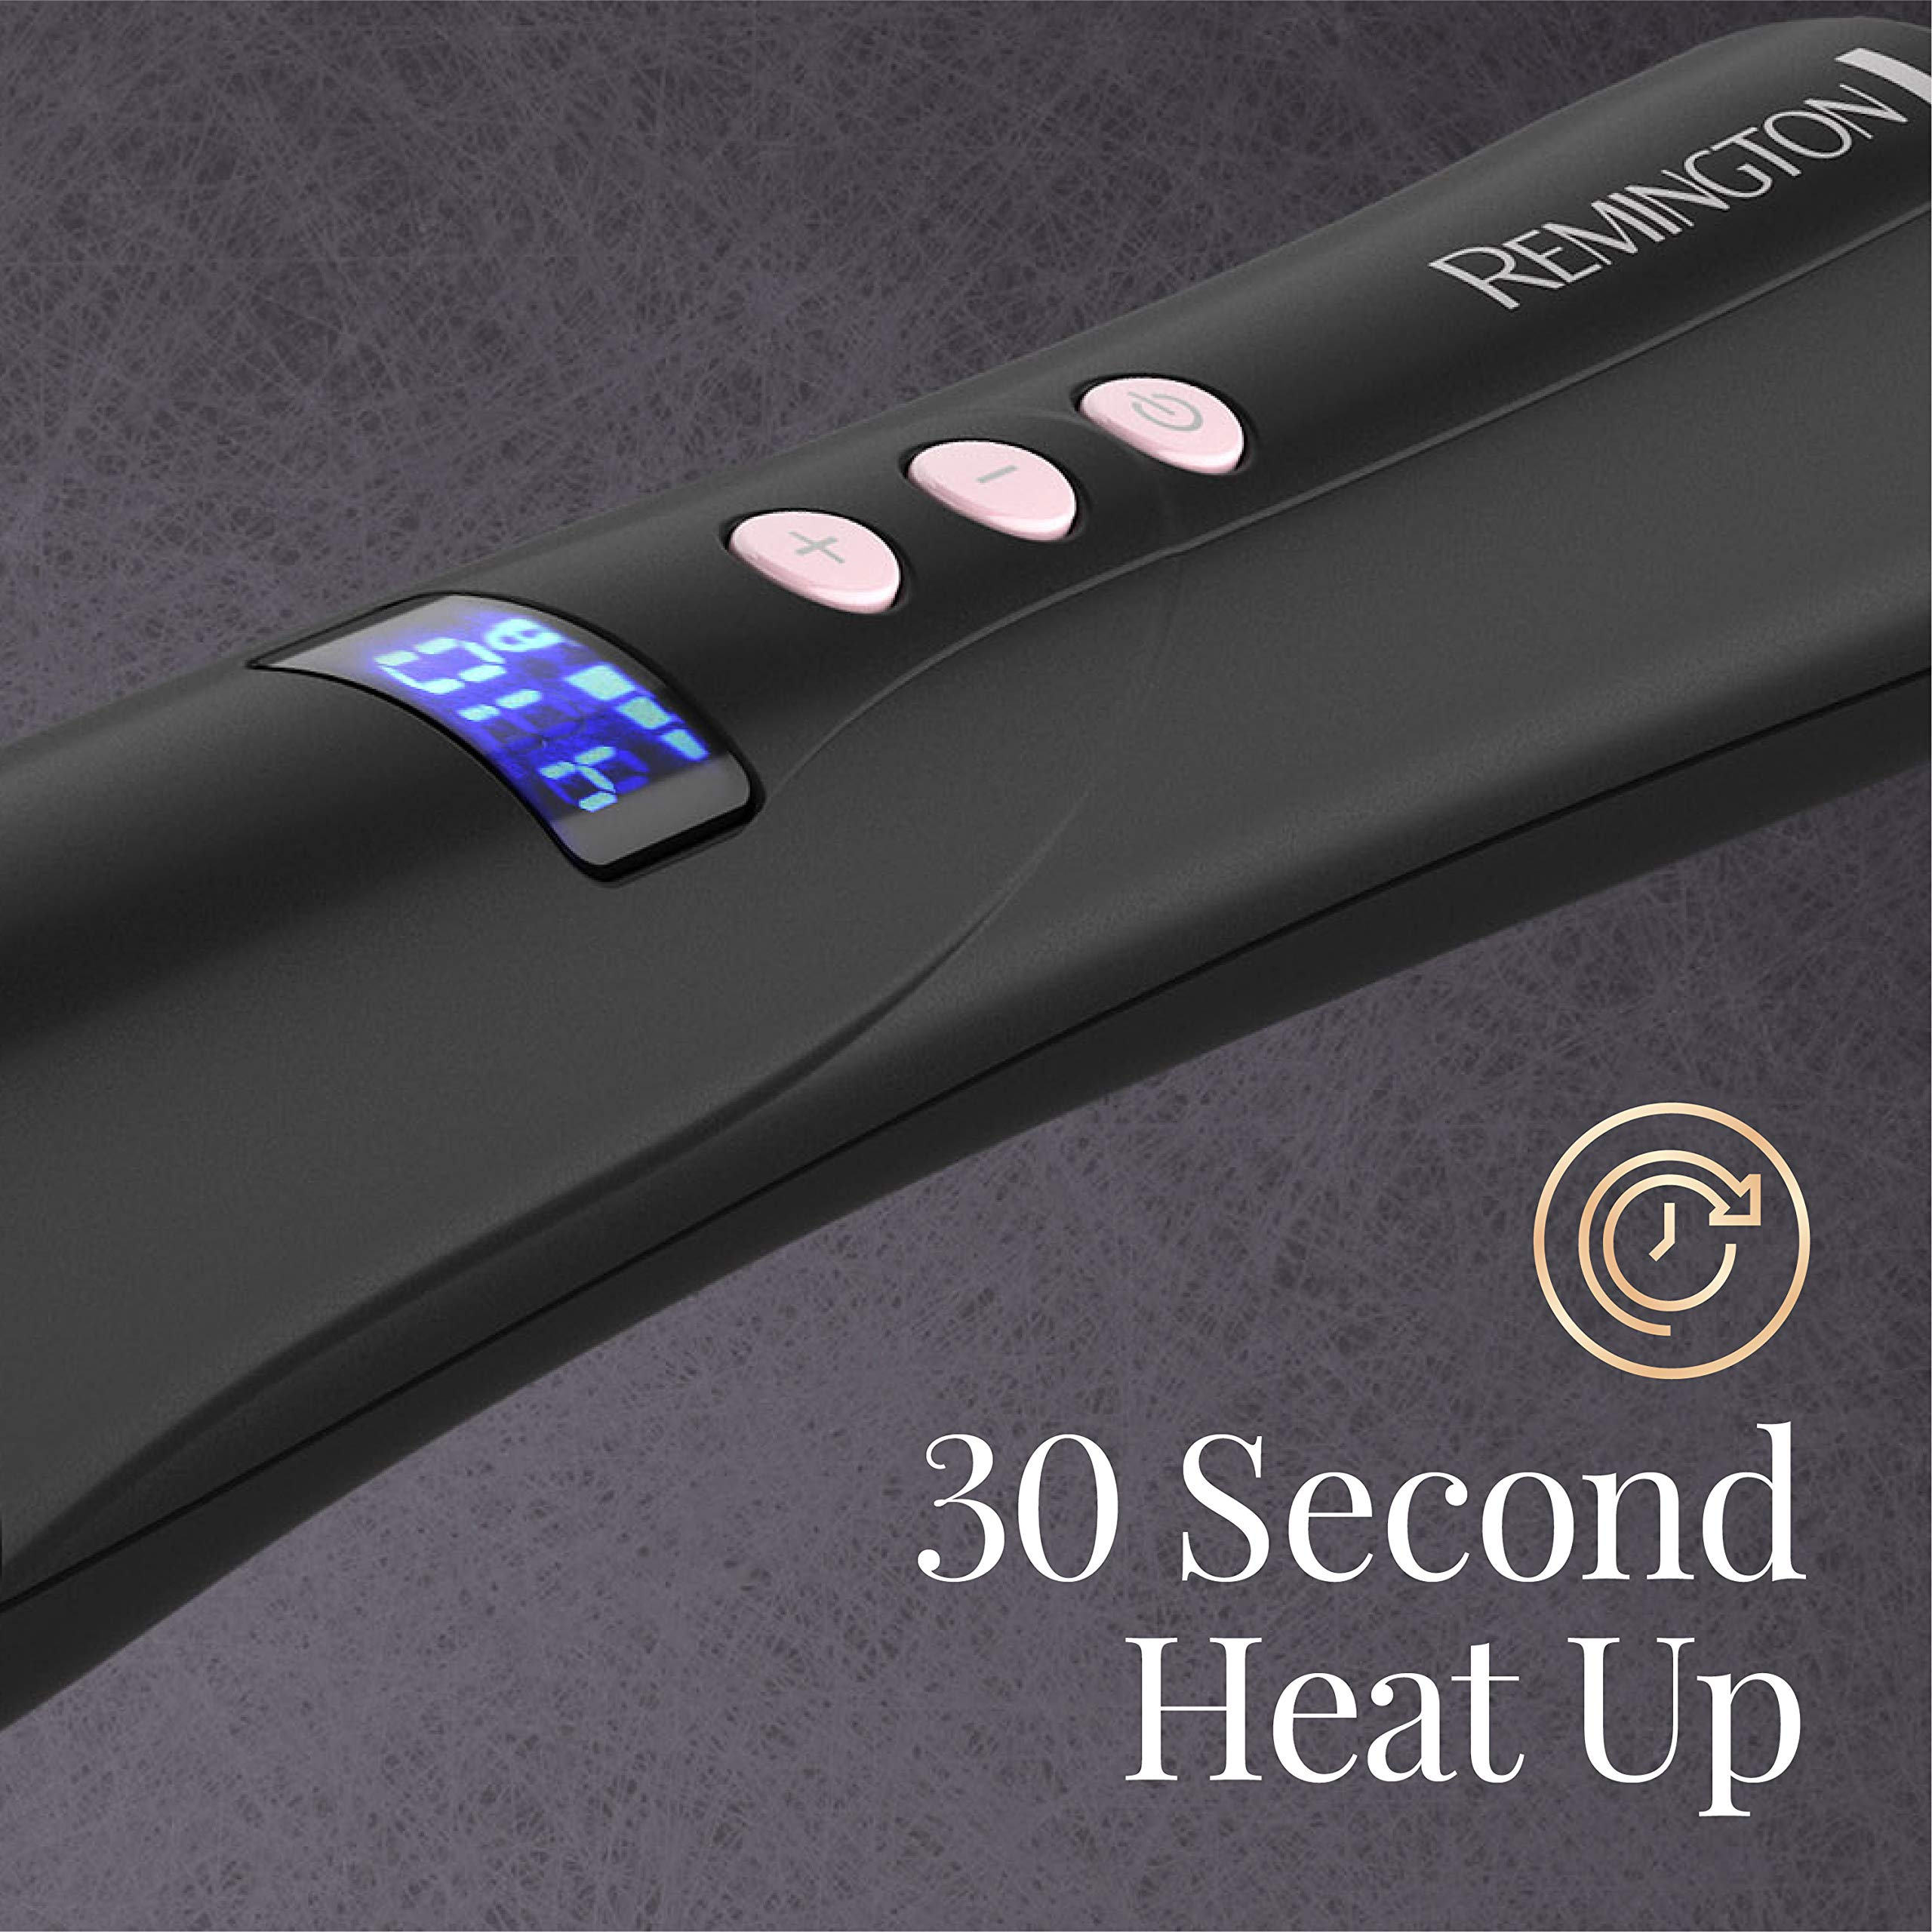 Remington Pro 1'' - 1 ½'' Curling Wand with Pearl Ceramic Technology and Digital Controls, CI9538 by Remington (Image #5)